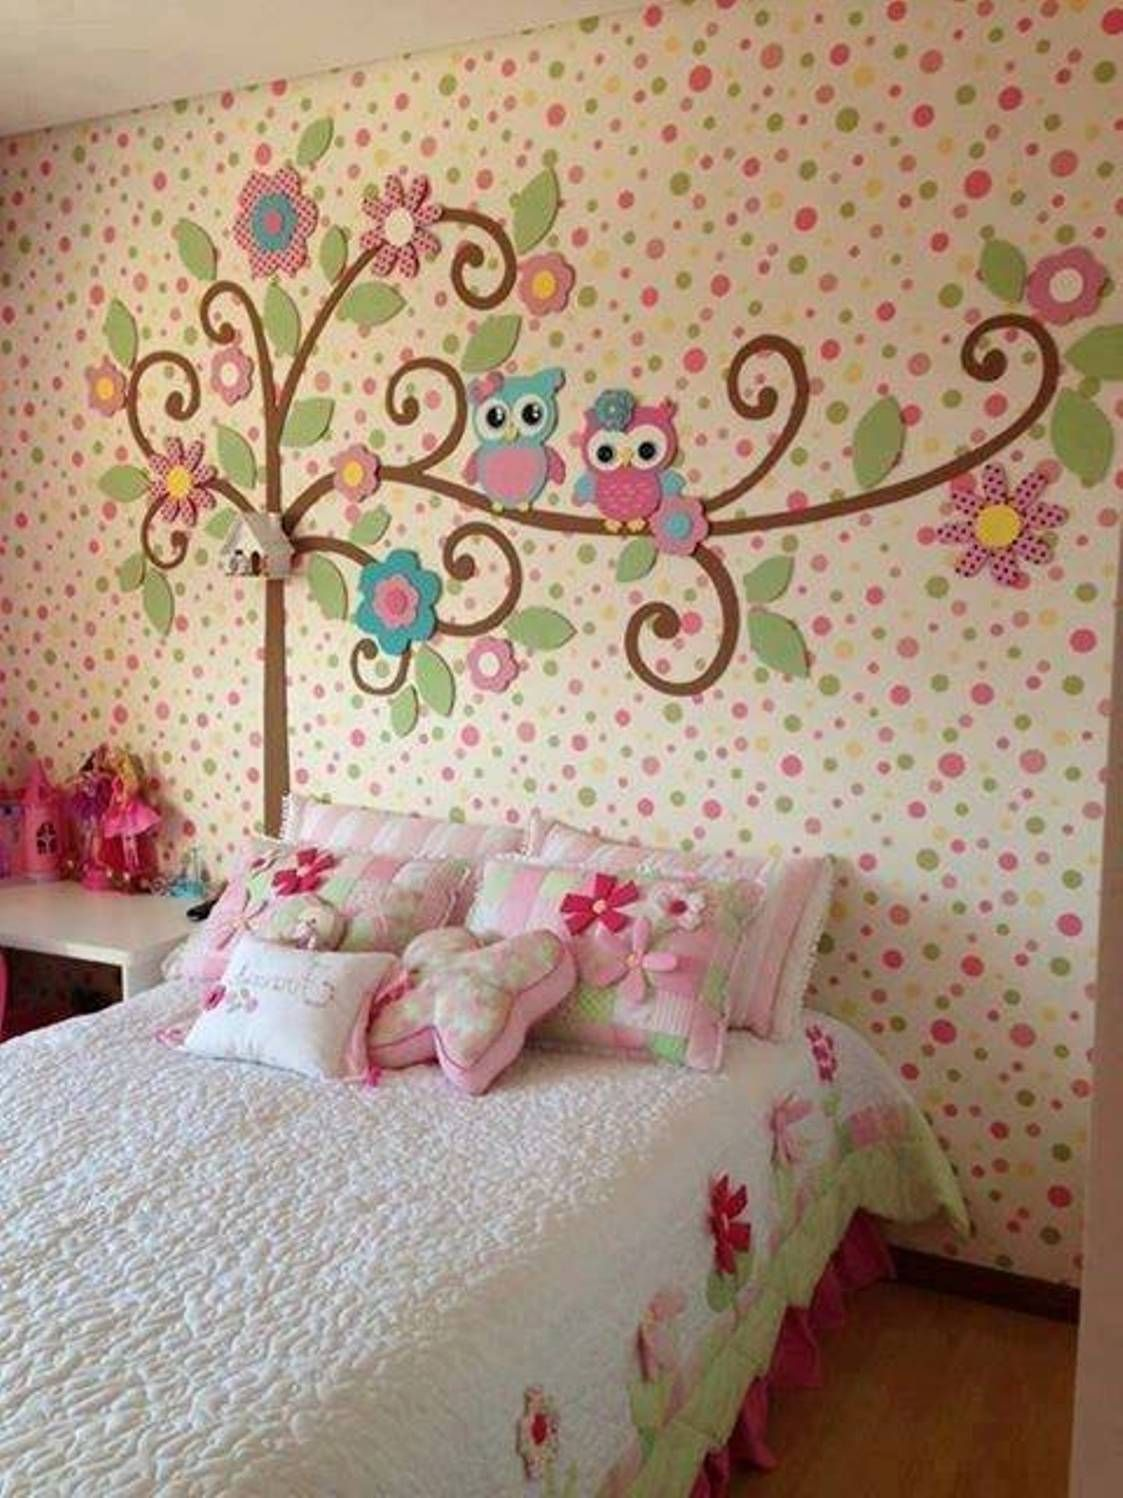 Cute girls bedroom design little girls bedroom design better home and garden savannah 39 s - Little girls bedrooms ...